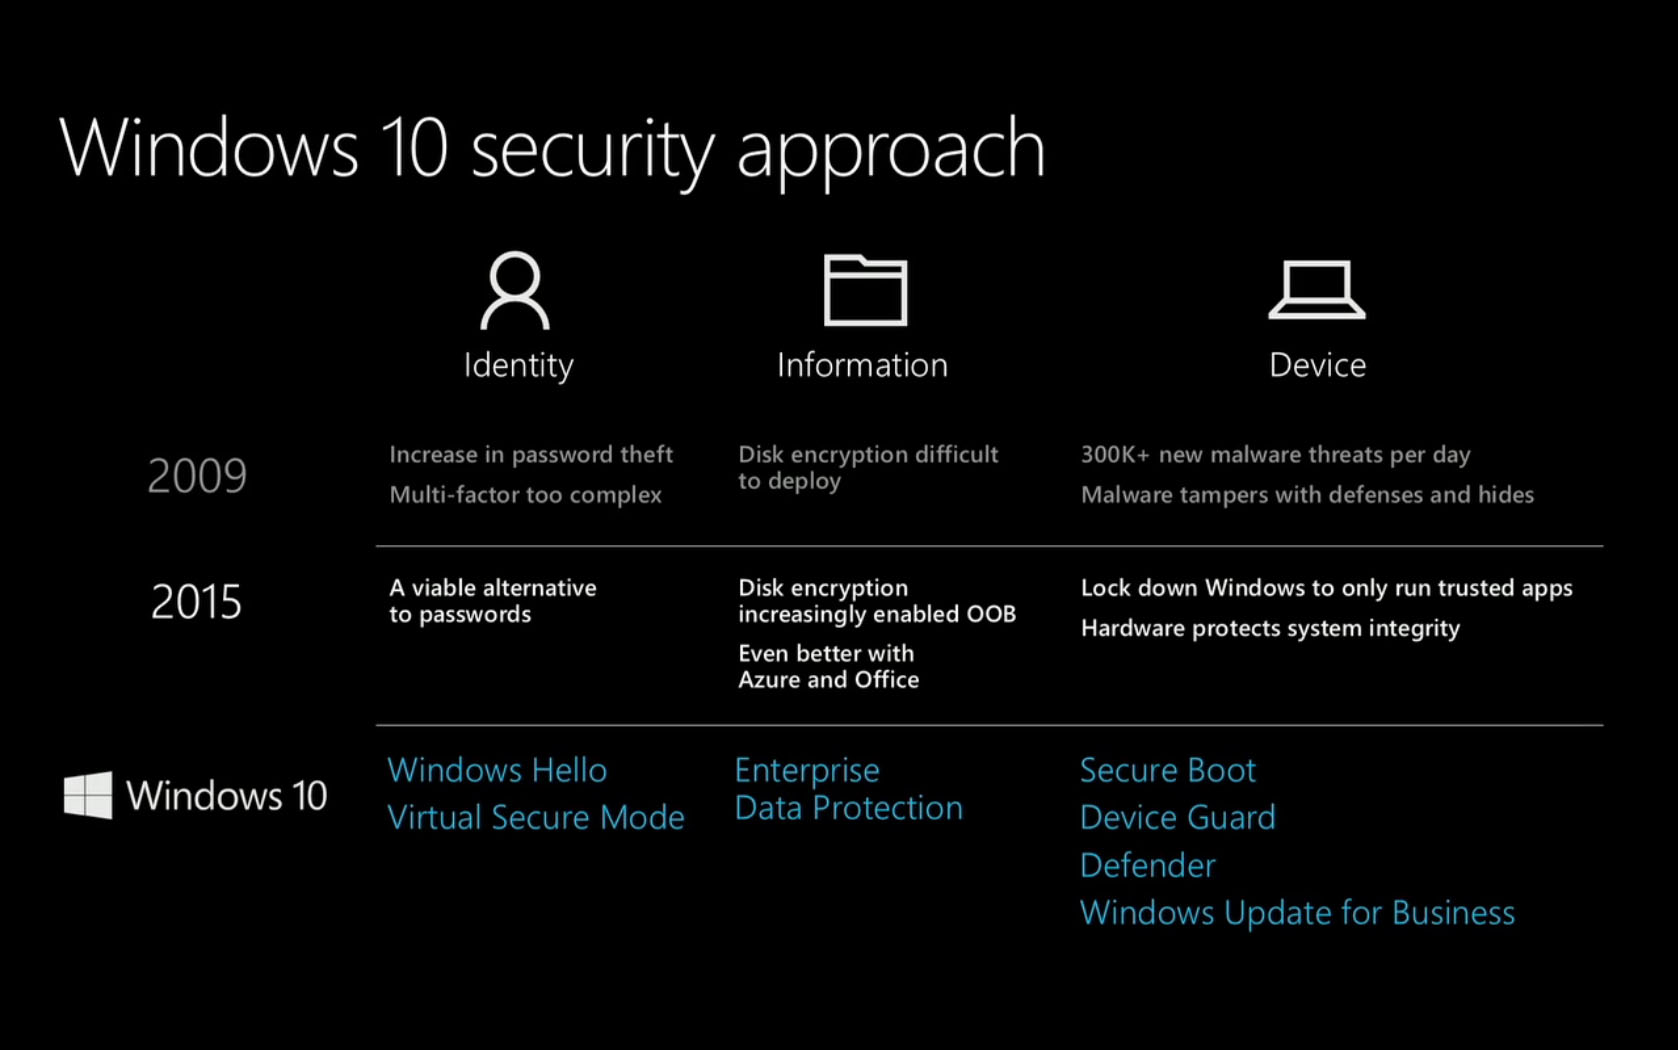 windows 10 upgrade security approach